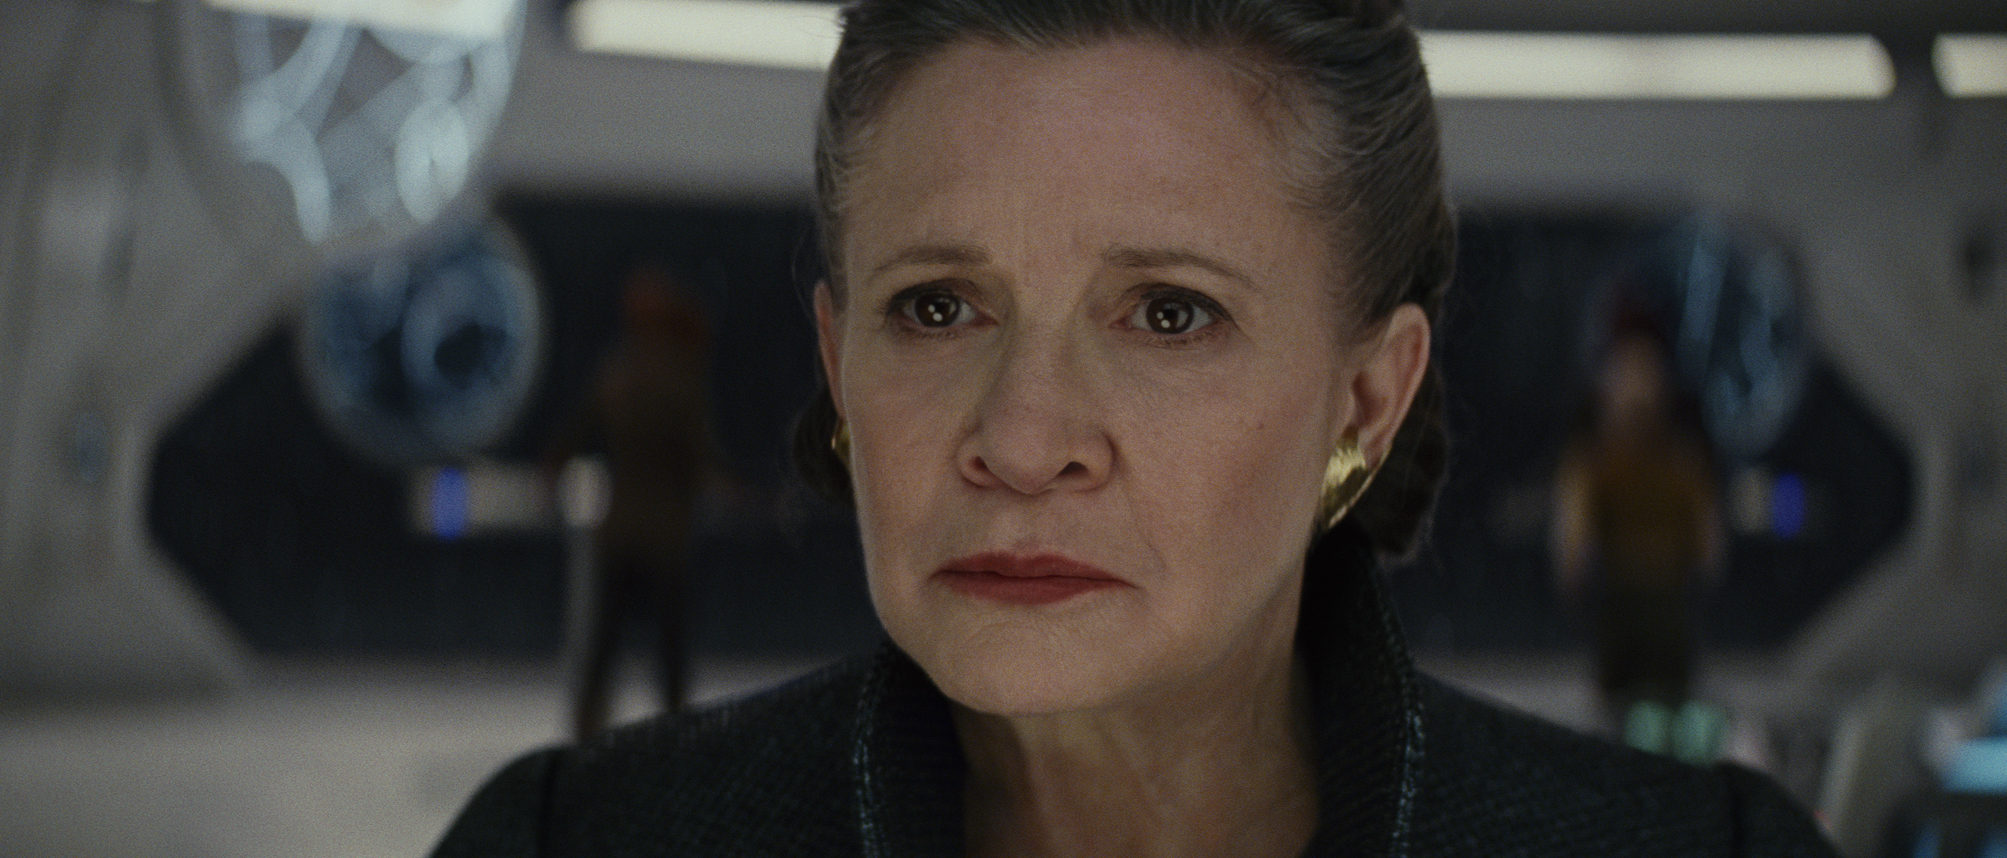 Star Wars: The Last Jedi..General Leia ..Photo: Lucasfilm Ltd. ..© 2017 Lucasfilm Ltd. All Rights Reserved.